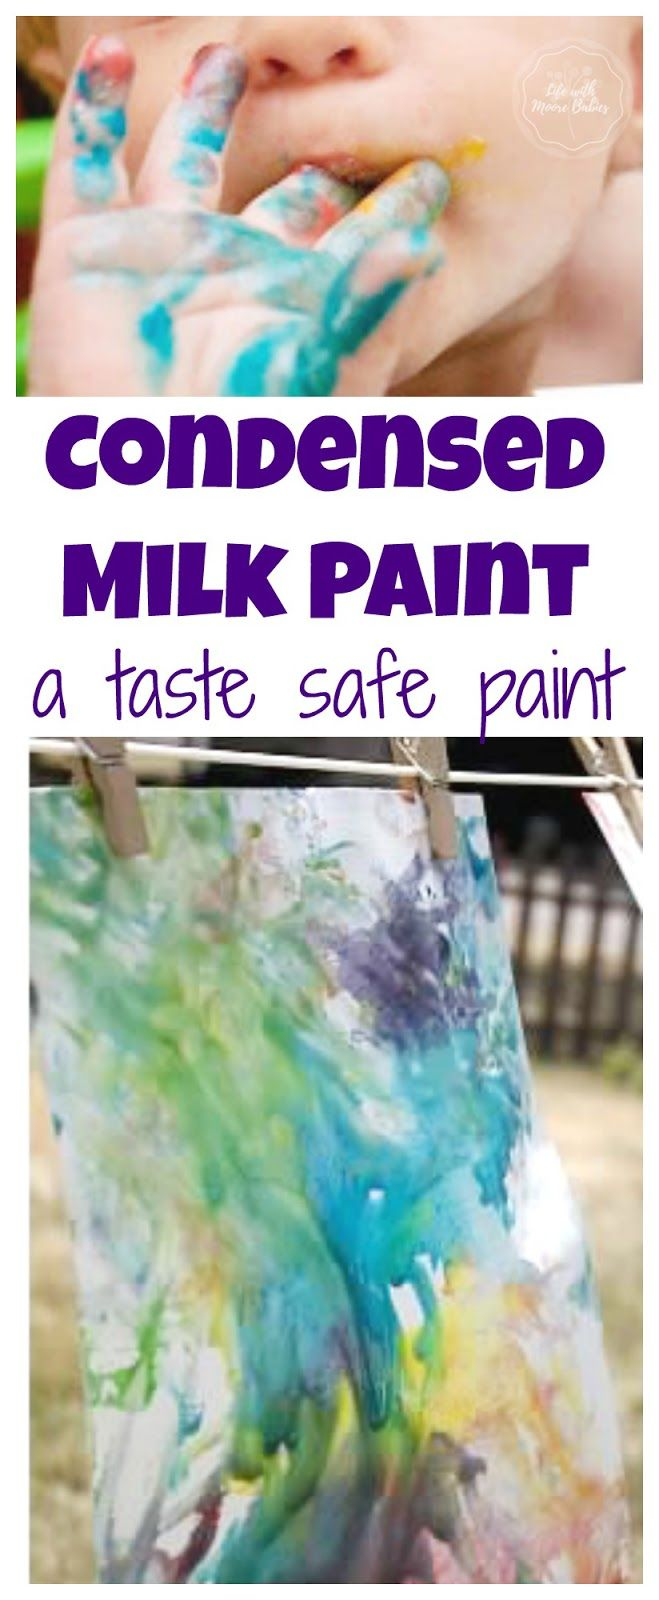 Baby safe paint for crafts - Taste Safe Messy Fun With Condensed Milk Paint